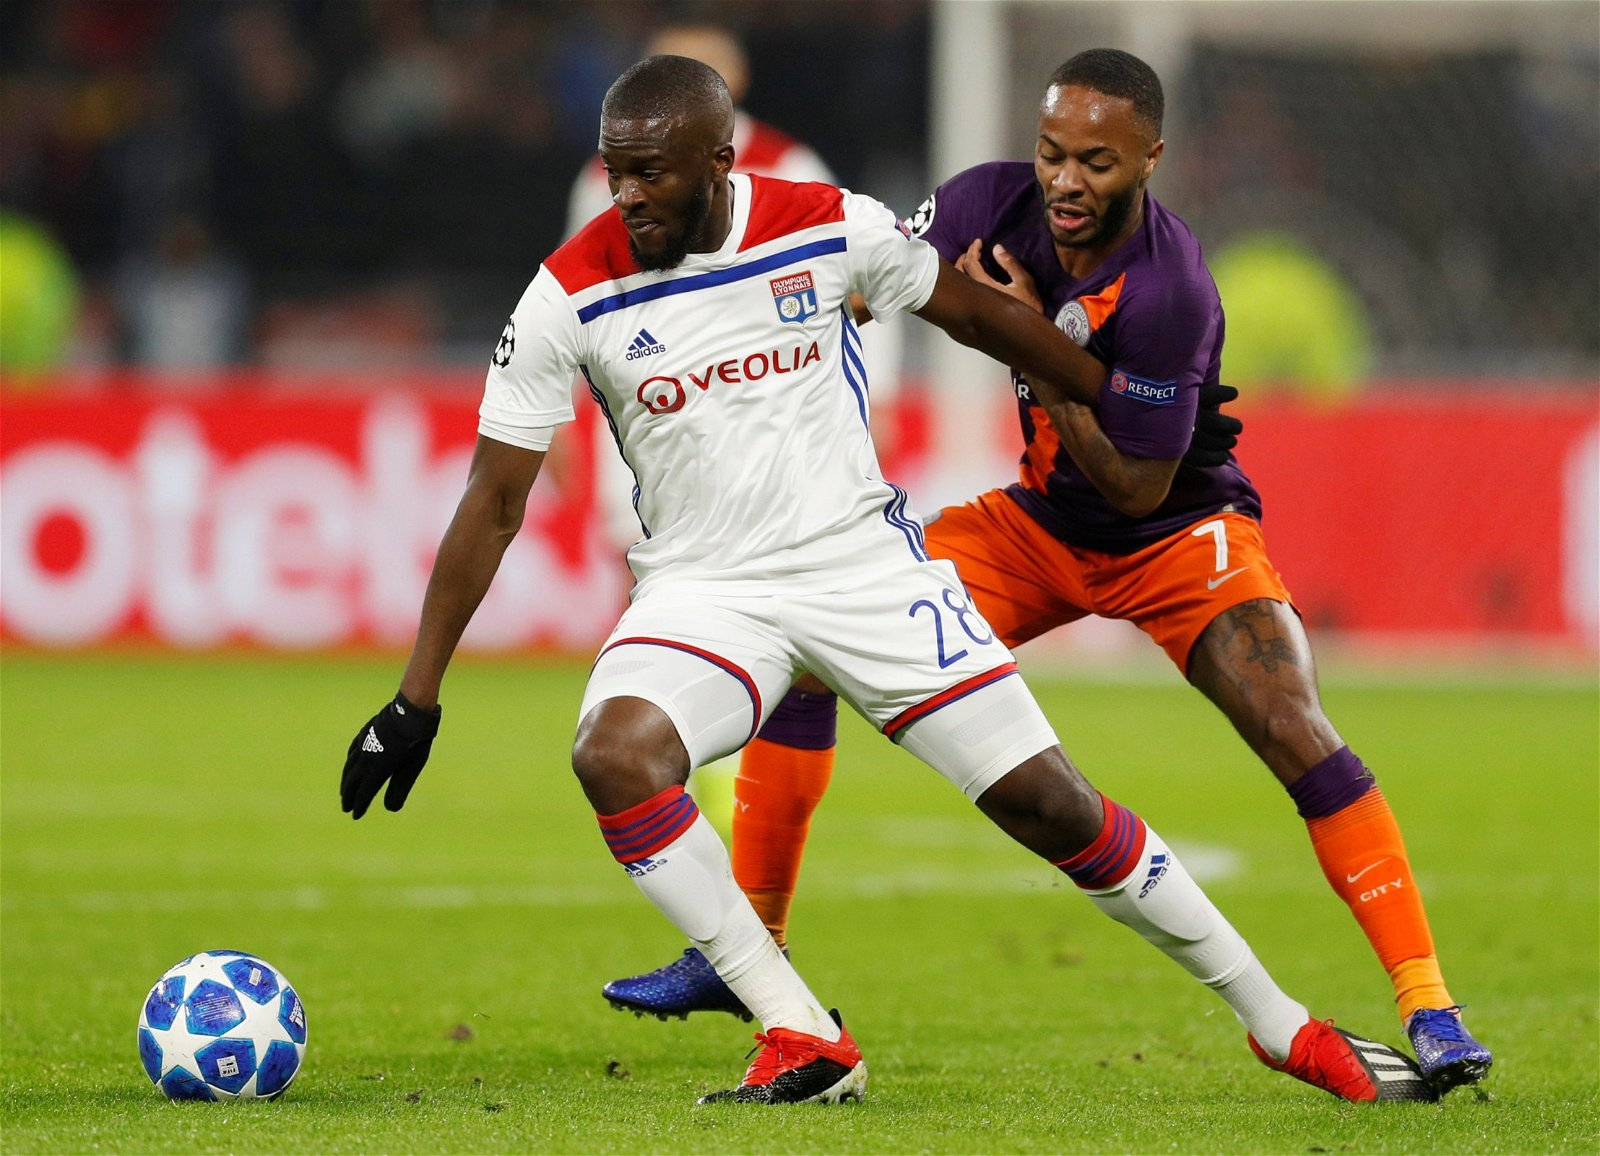 A star from nowhere: Why Spurs are chasing Ndombele